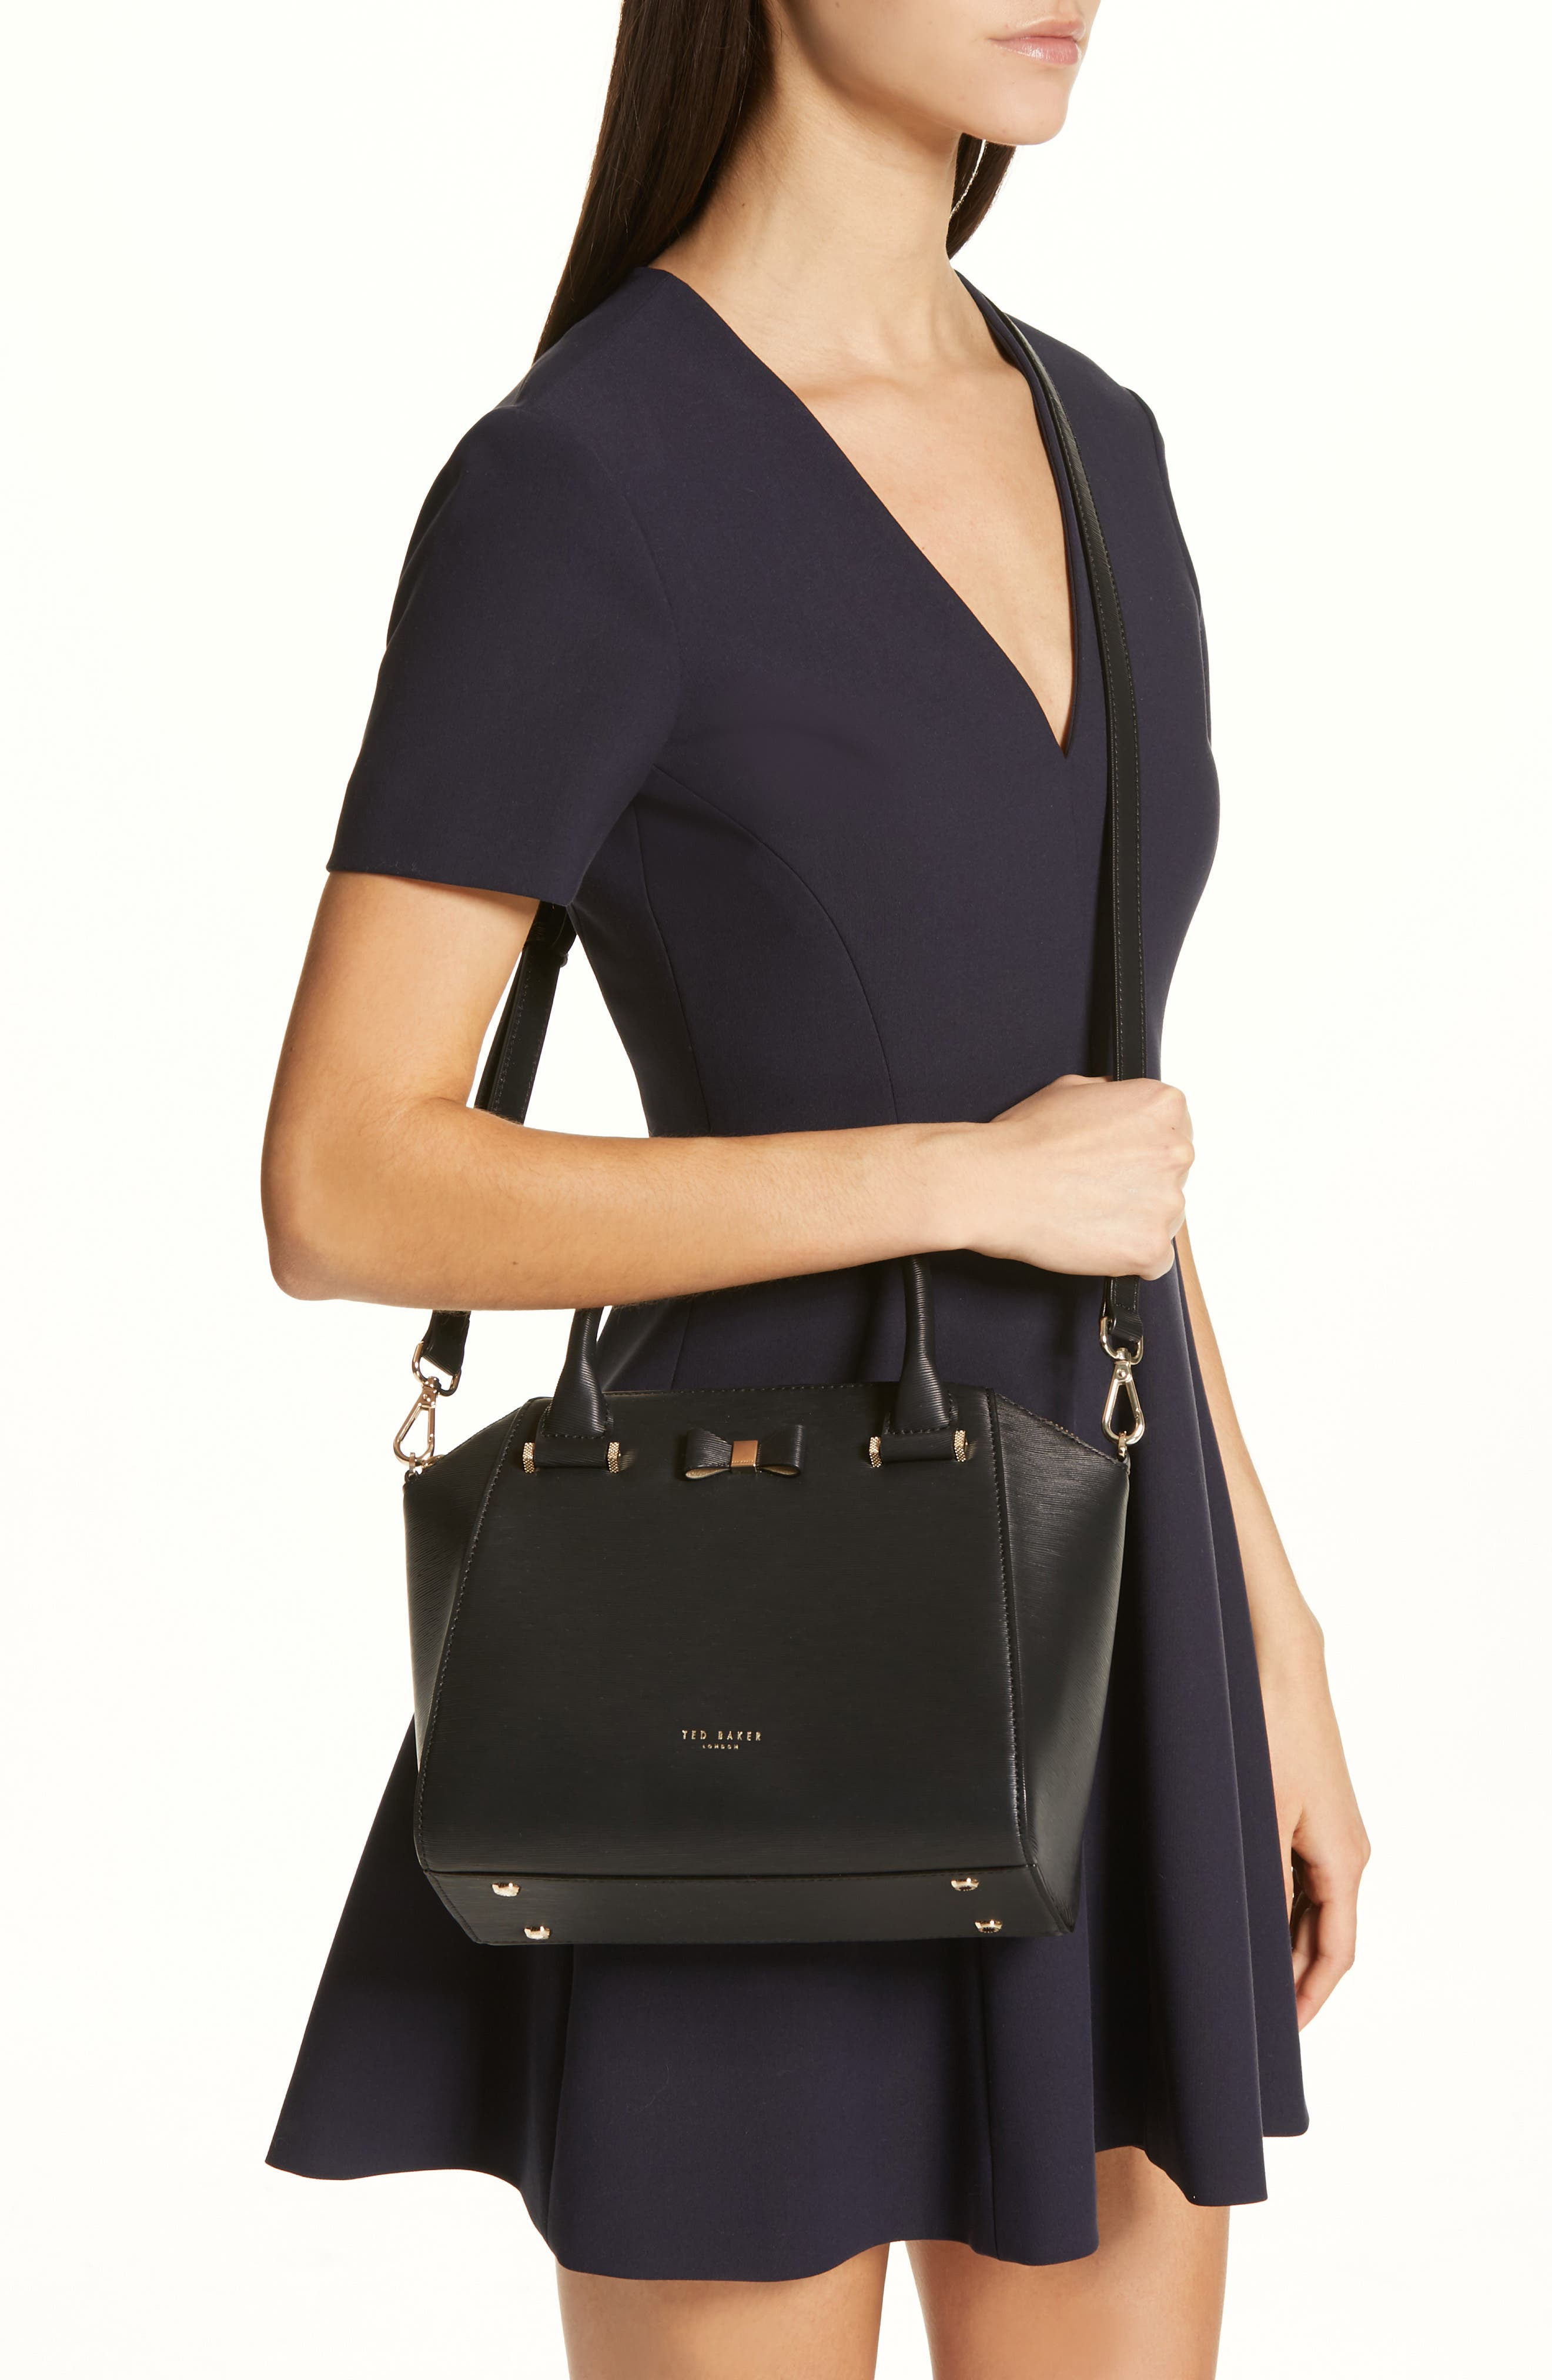 TED BAKER LONDON, Bow Tote, Alternate thumbnail 3, color, 001